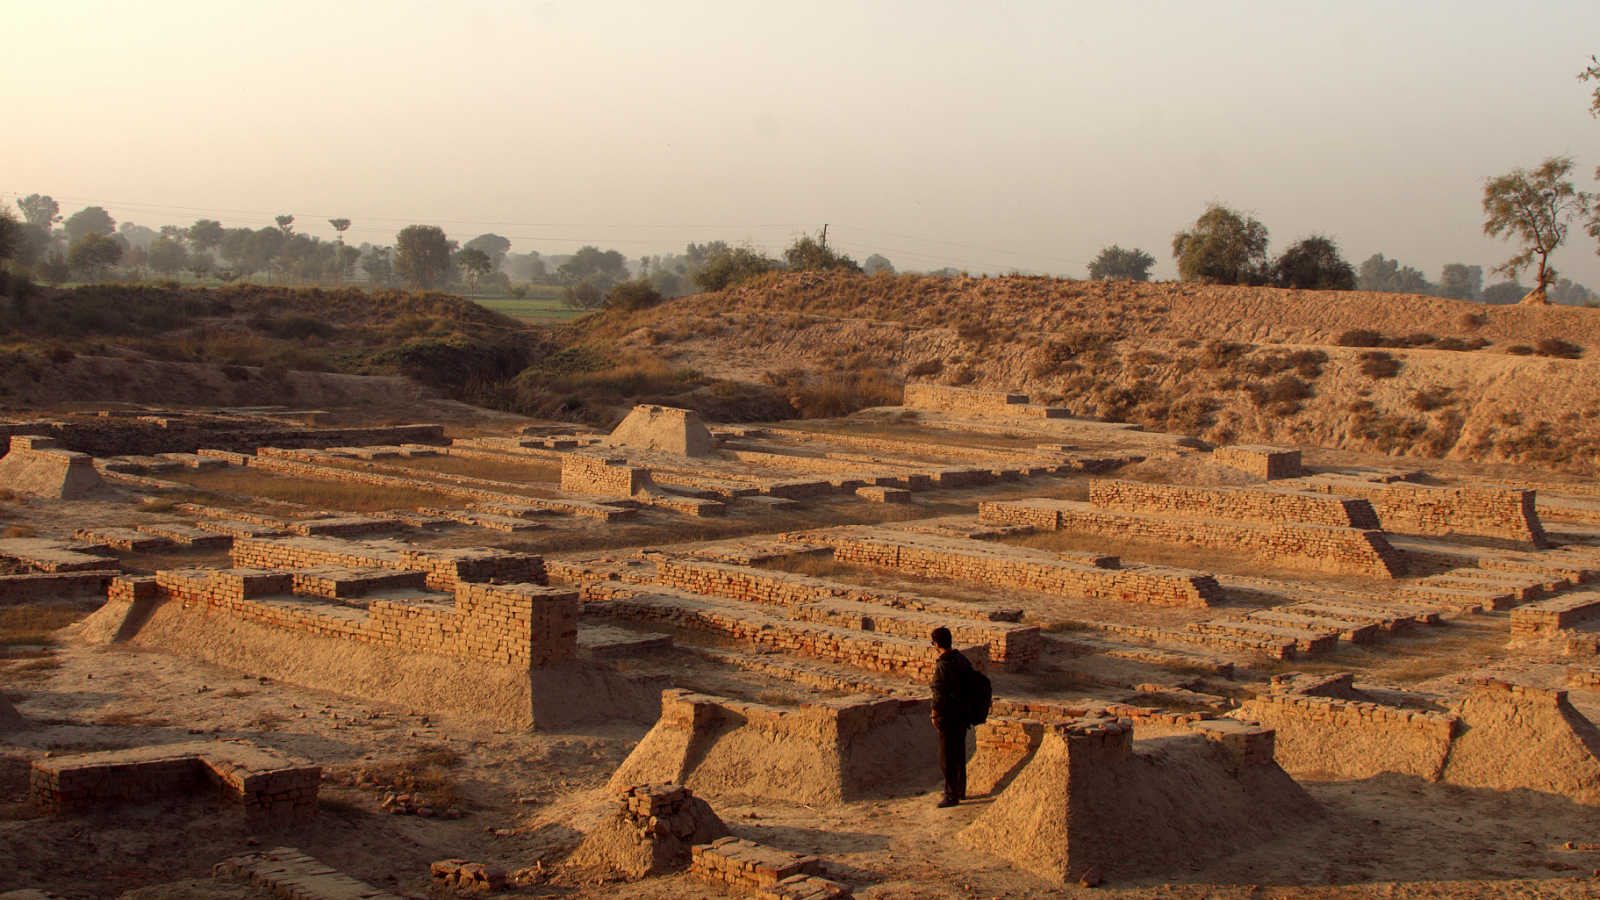 A picture dated 14 December 2013 shows a Pakistani tourist visiting the remains of the ancient Indus valley civilization in Harappa, Pakistan. Some 4,500 years ago, a remarkable civilization existed in the vast plain of the Indus river and its tributaries. It dominated an approximate area of 1,100,700 square kilometers from the foothill of the Himalaya to the Arabian sea. Among hundreds of ancient settlements bearing imprints of this civilization, Harappa and Mohenjodaro were two important urban centers. A series of archaeological excavations at Harappa - Mohenjodari and other sites since 1921 have brought to light remains of systematically planned cities, towns and settlements offering an outstanding example of well organized society (wide straight roads, well planned houses with elaborate underground system of drainage).